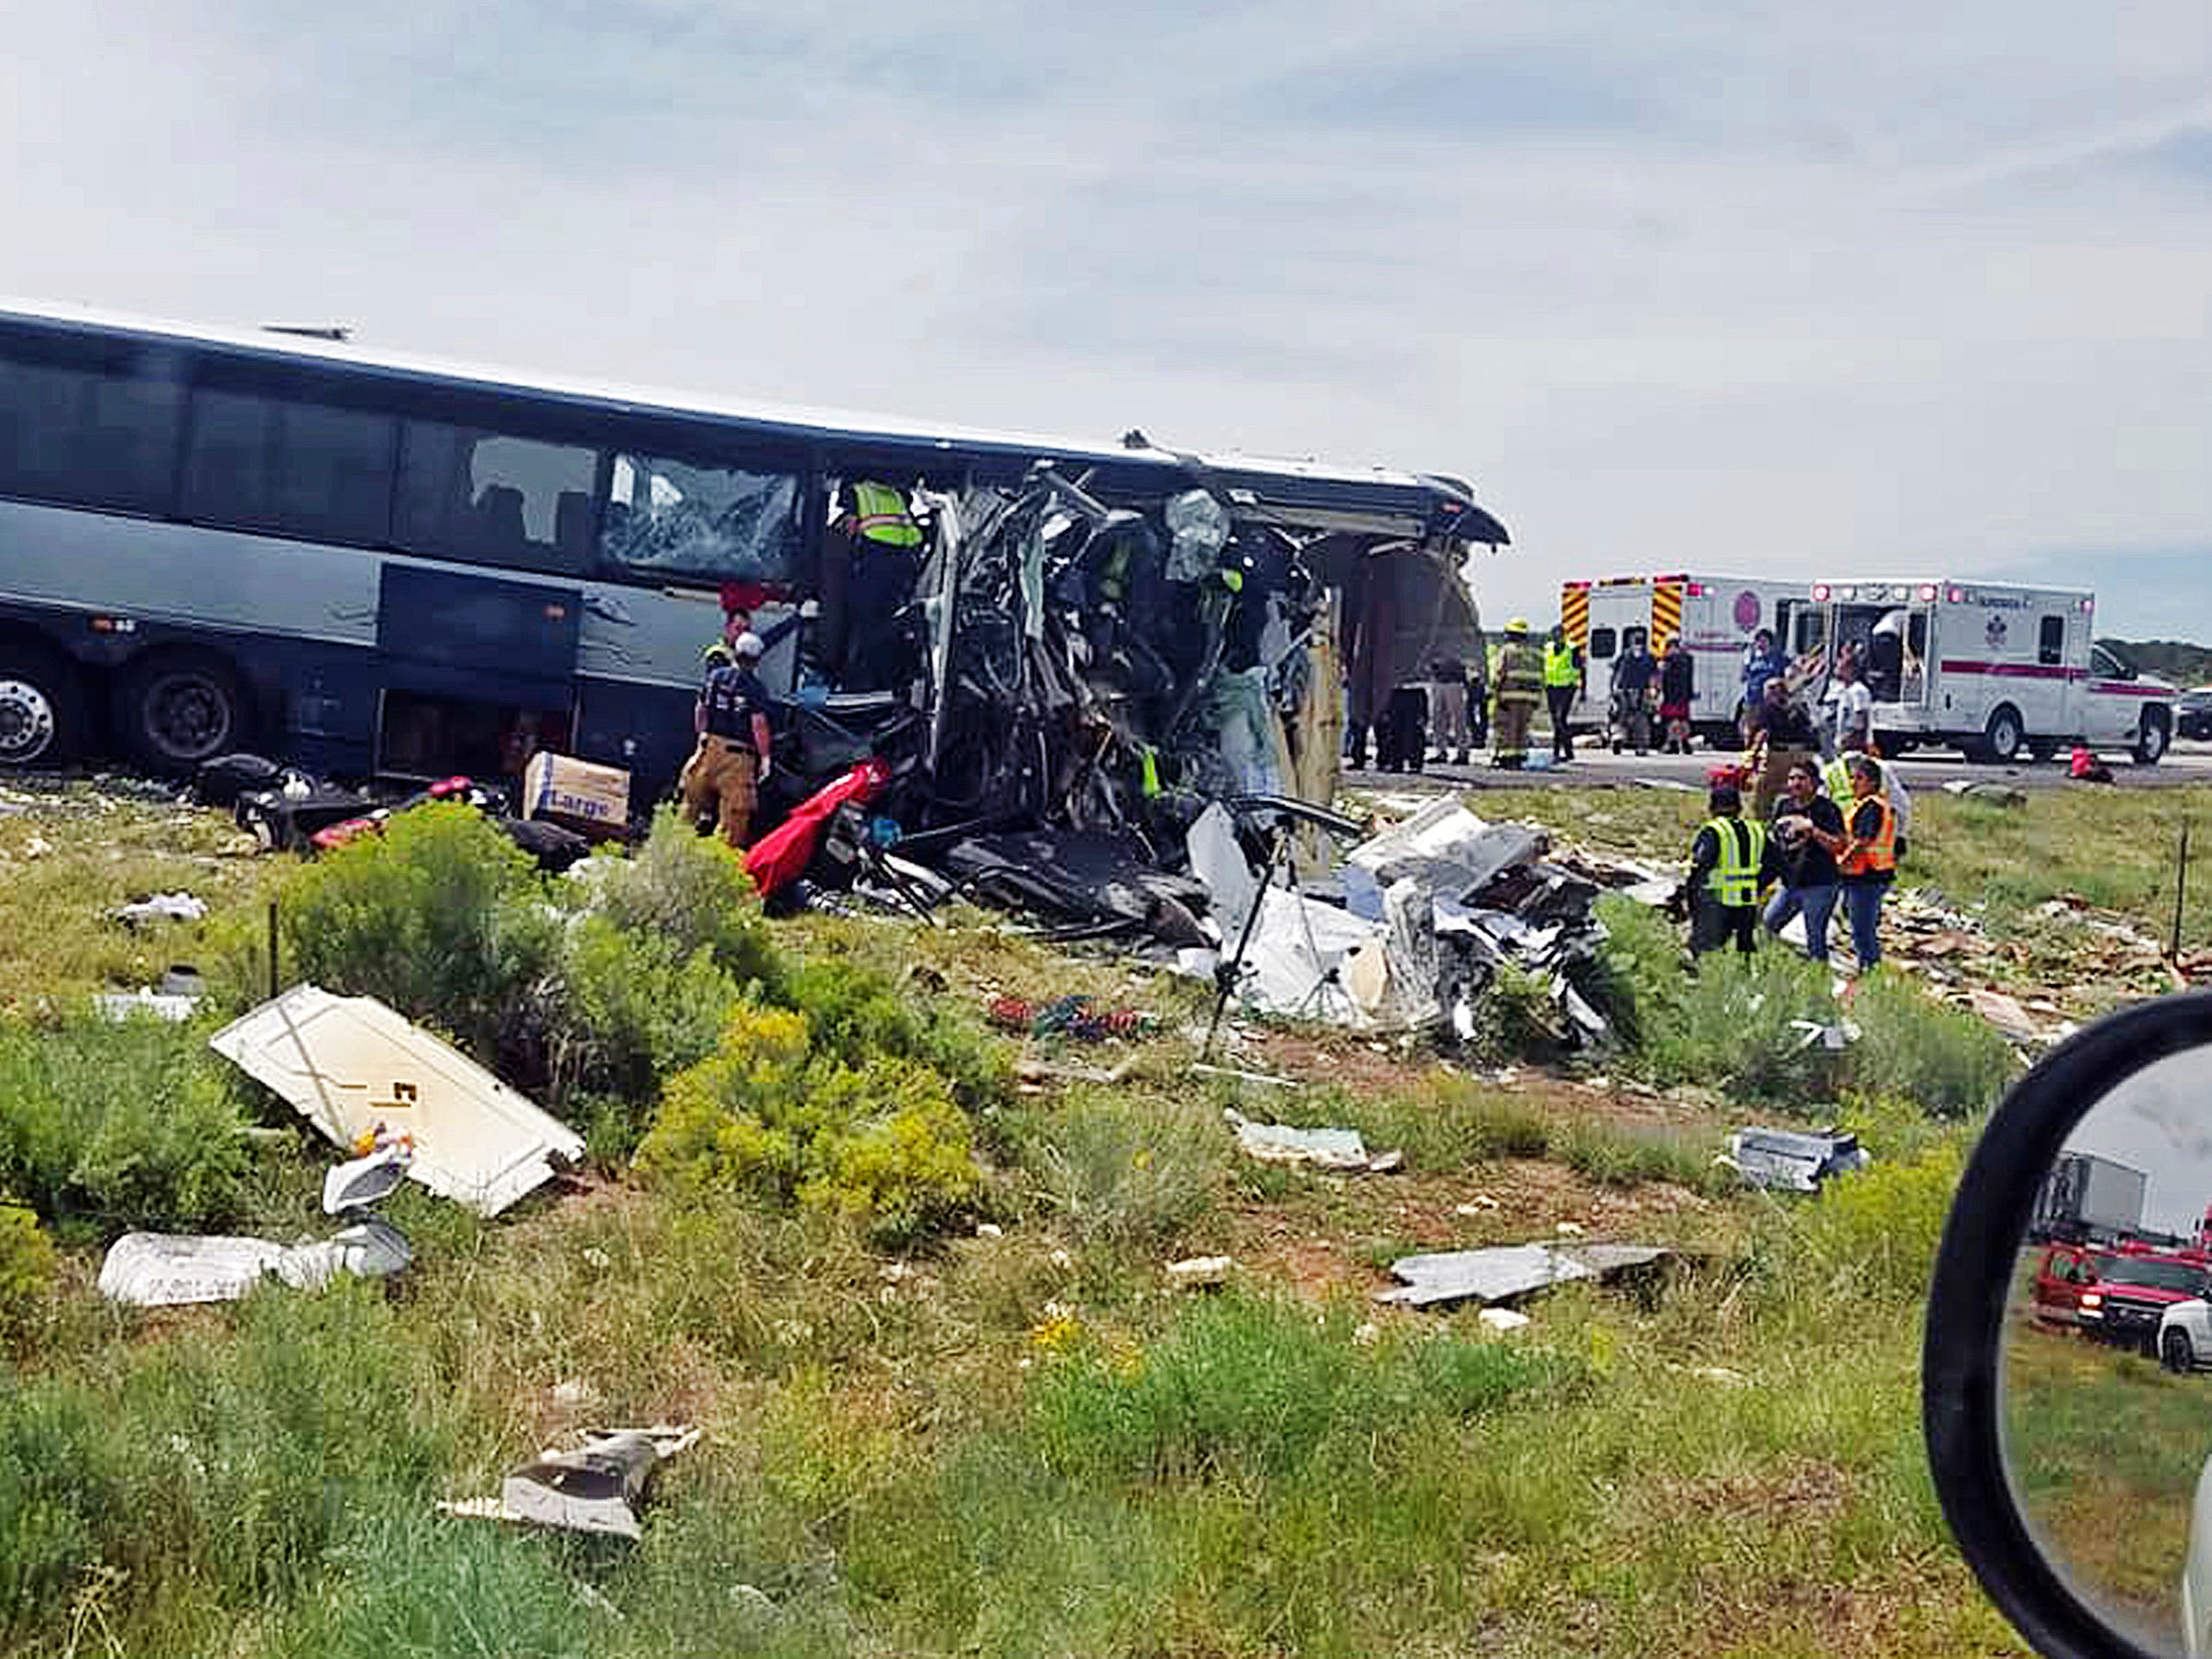 First responders working the scene of a collision between a Greyhound passenger bus and a semi-truck.